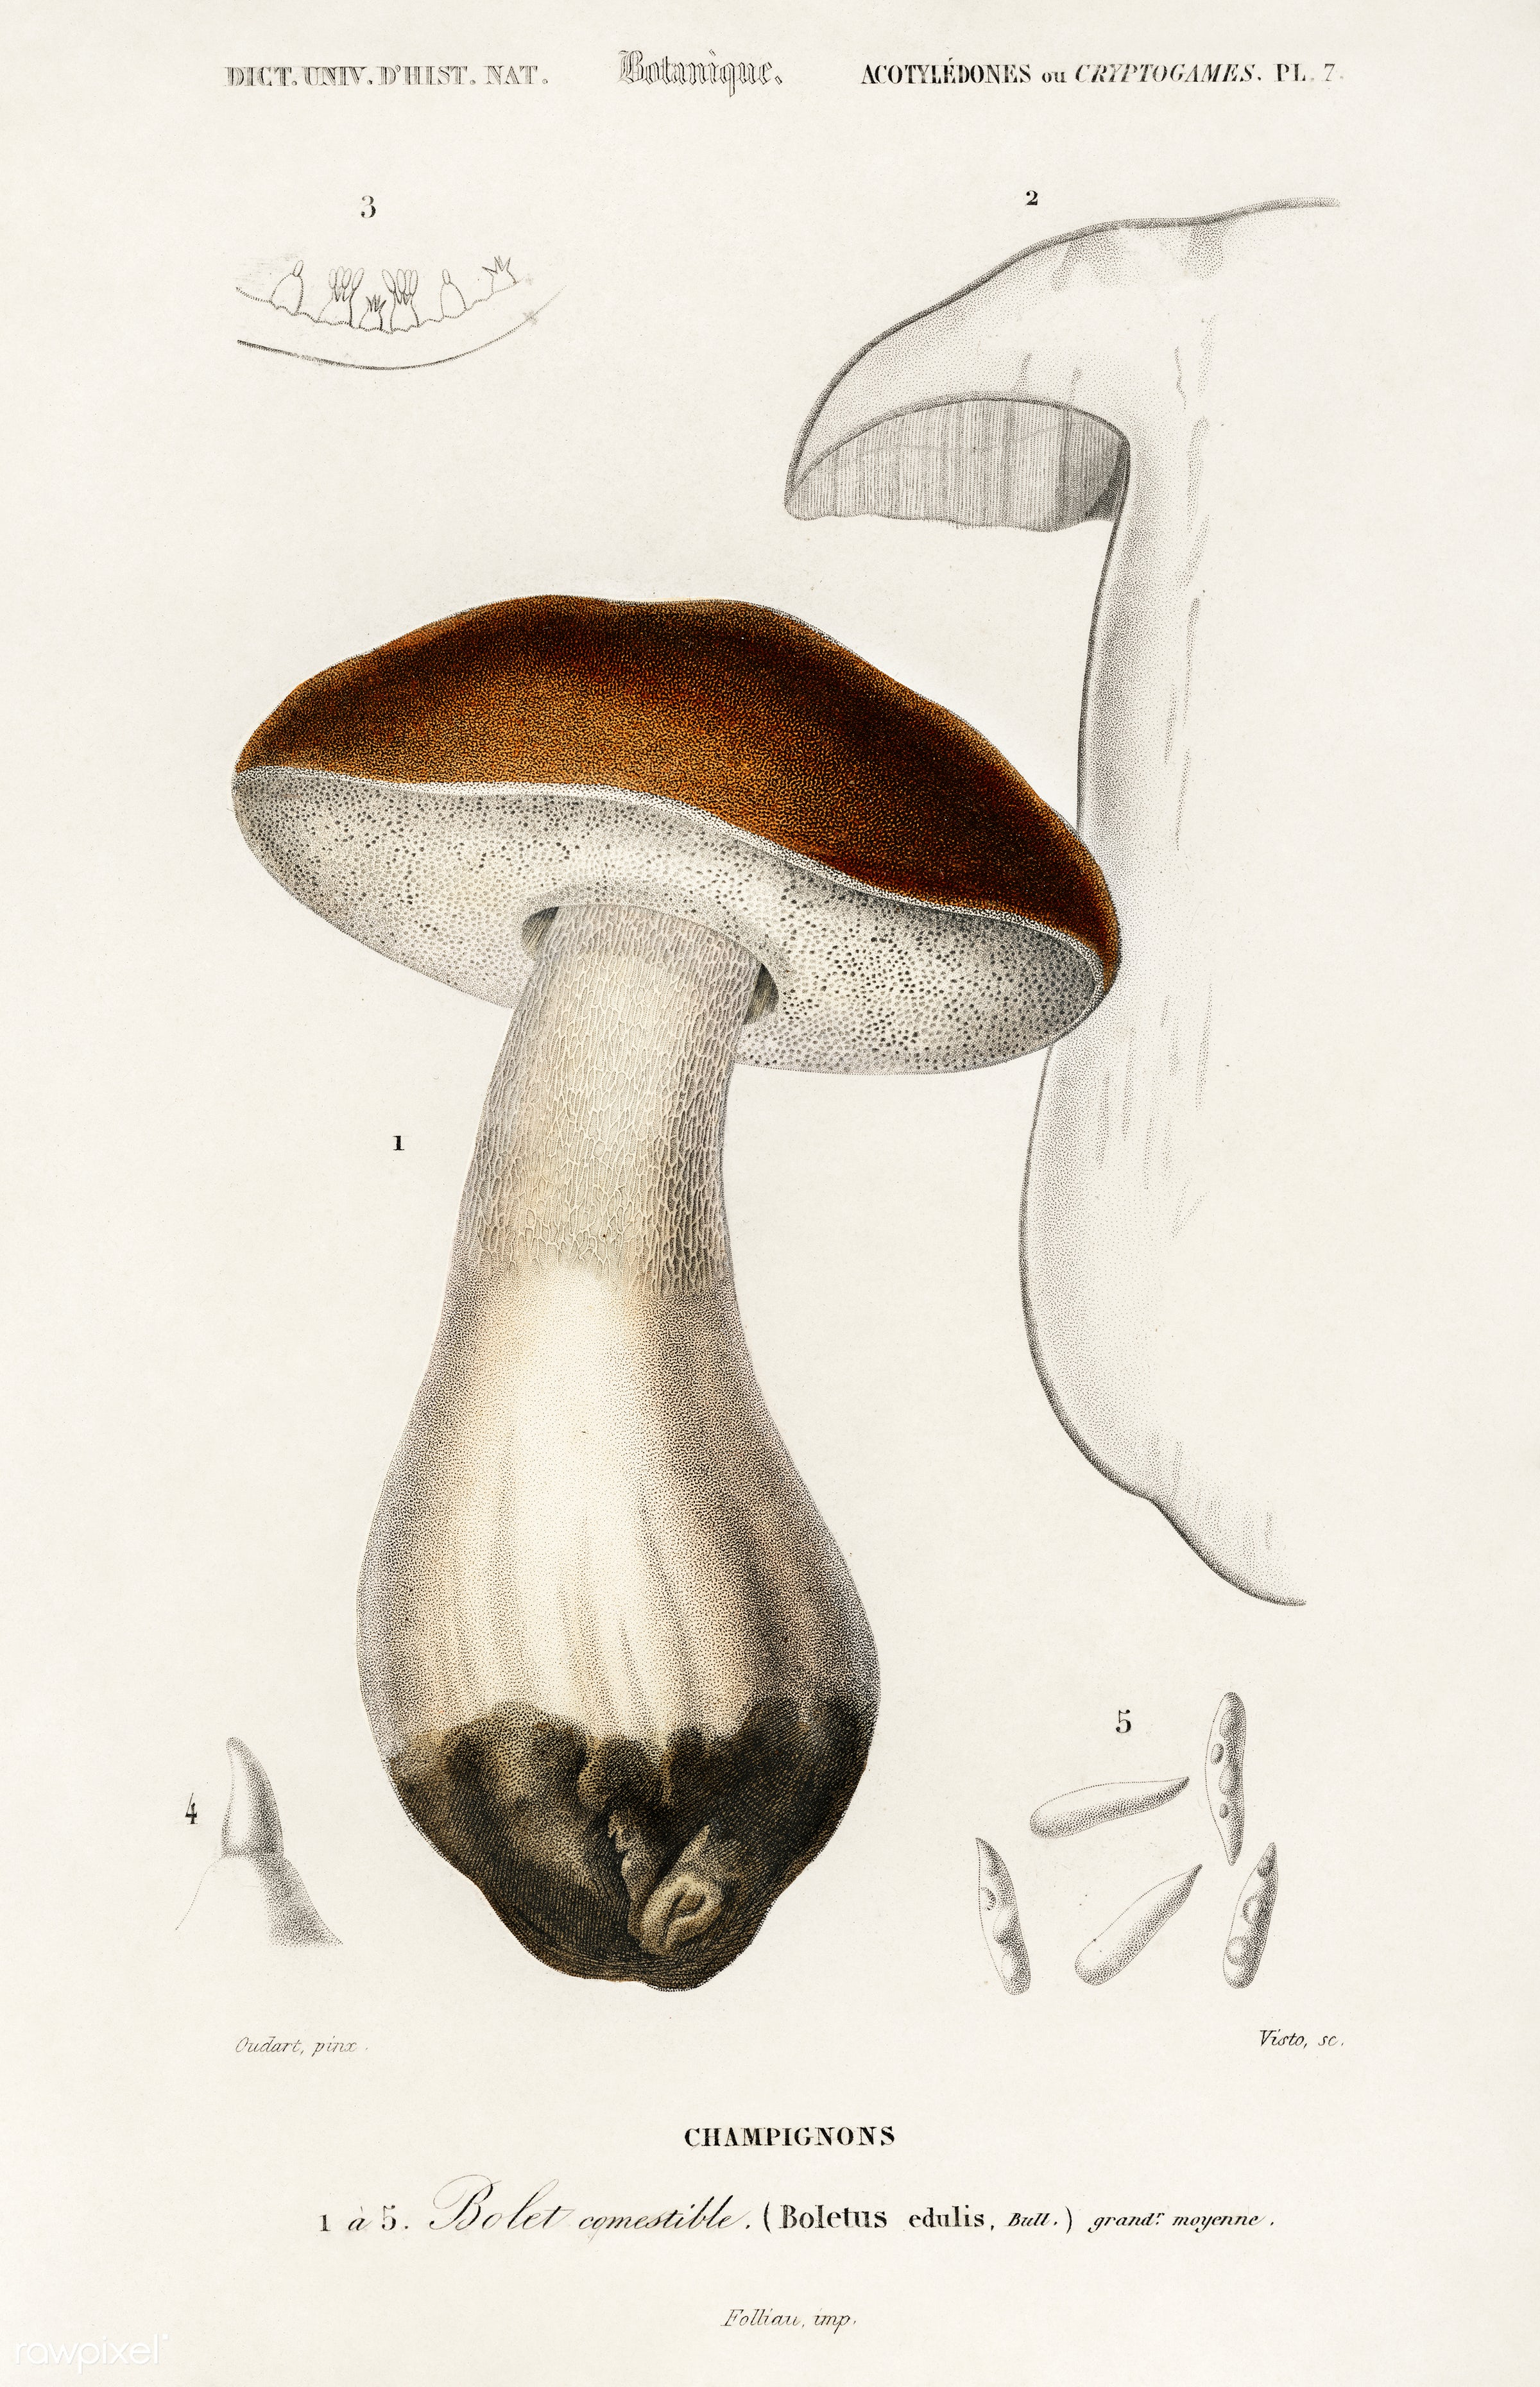 Penny bun (Boletus edulis) illustrated by Charles Dessalines D' Orbigny (1806-1876). Digitally enhanced from our own...